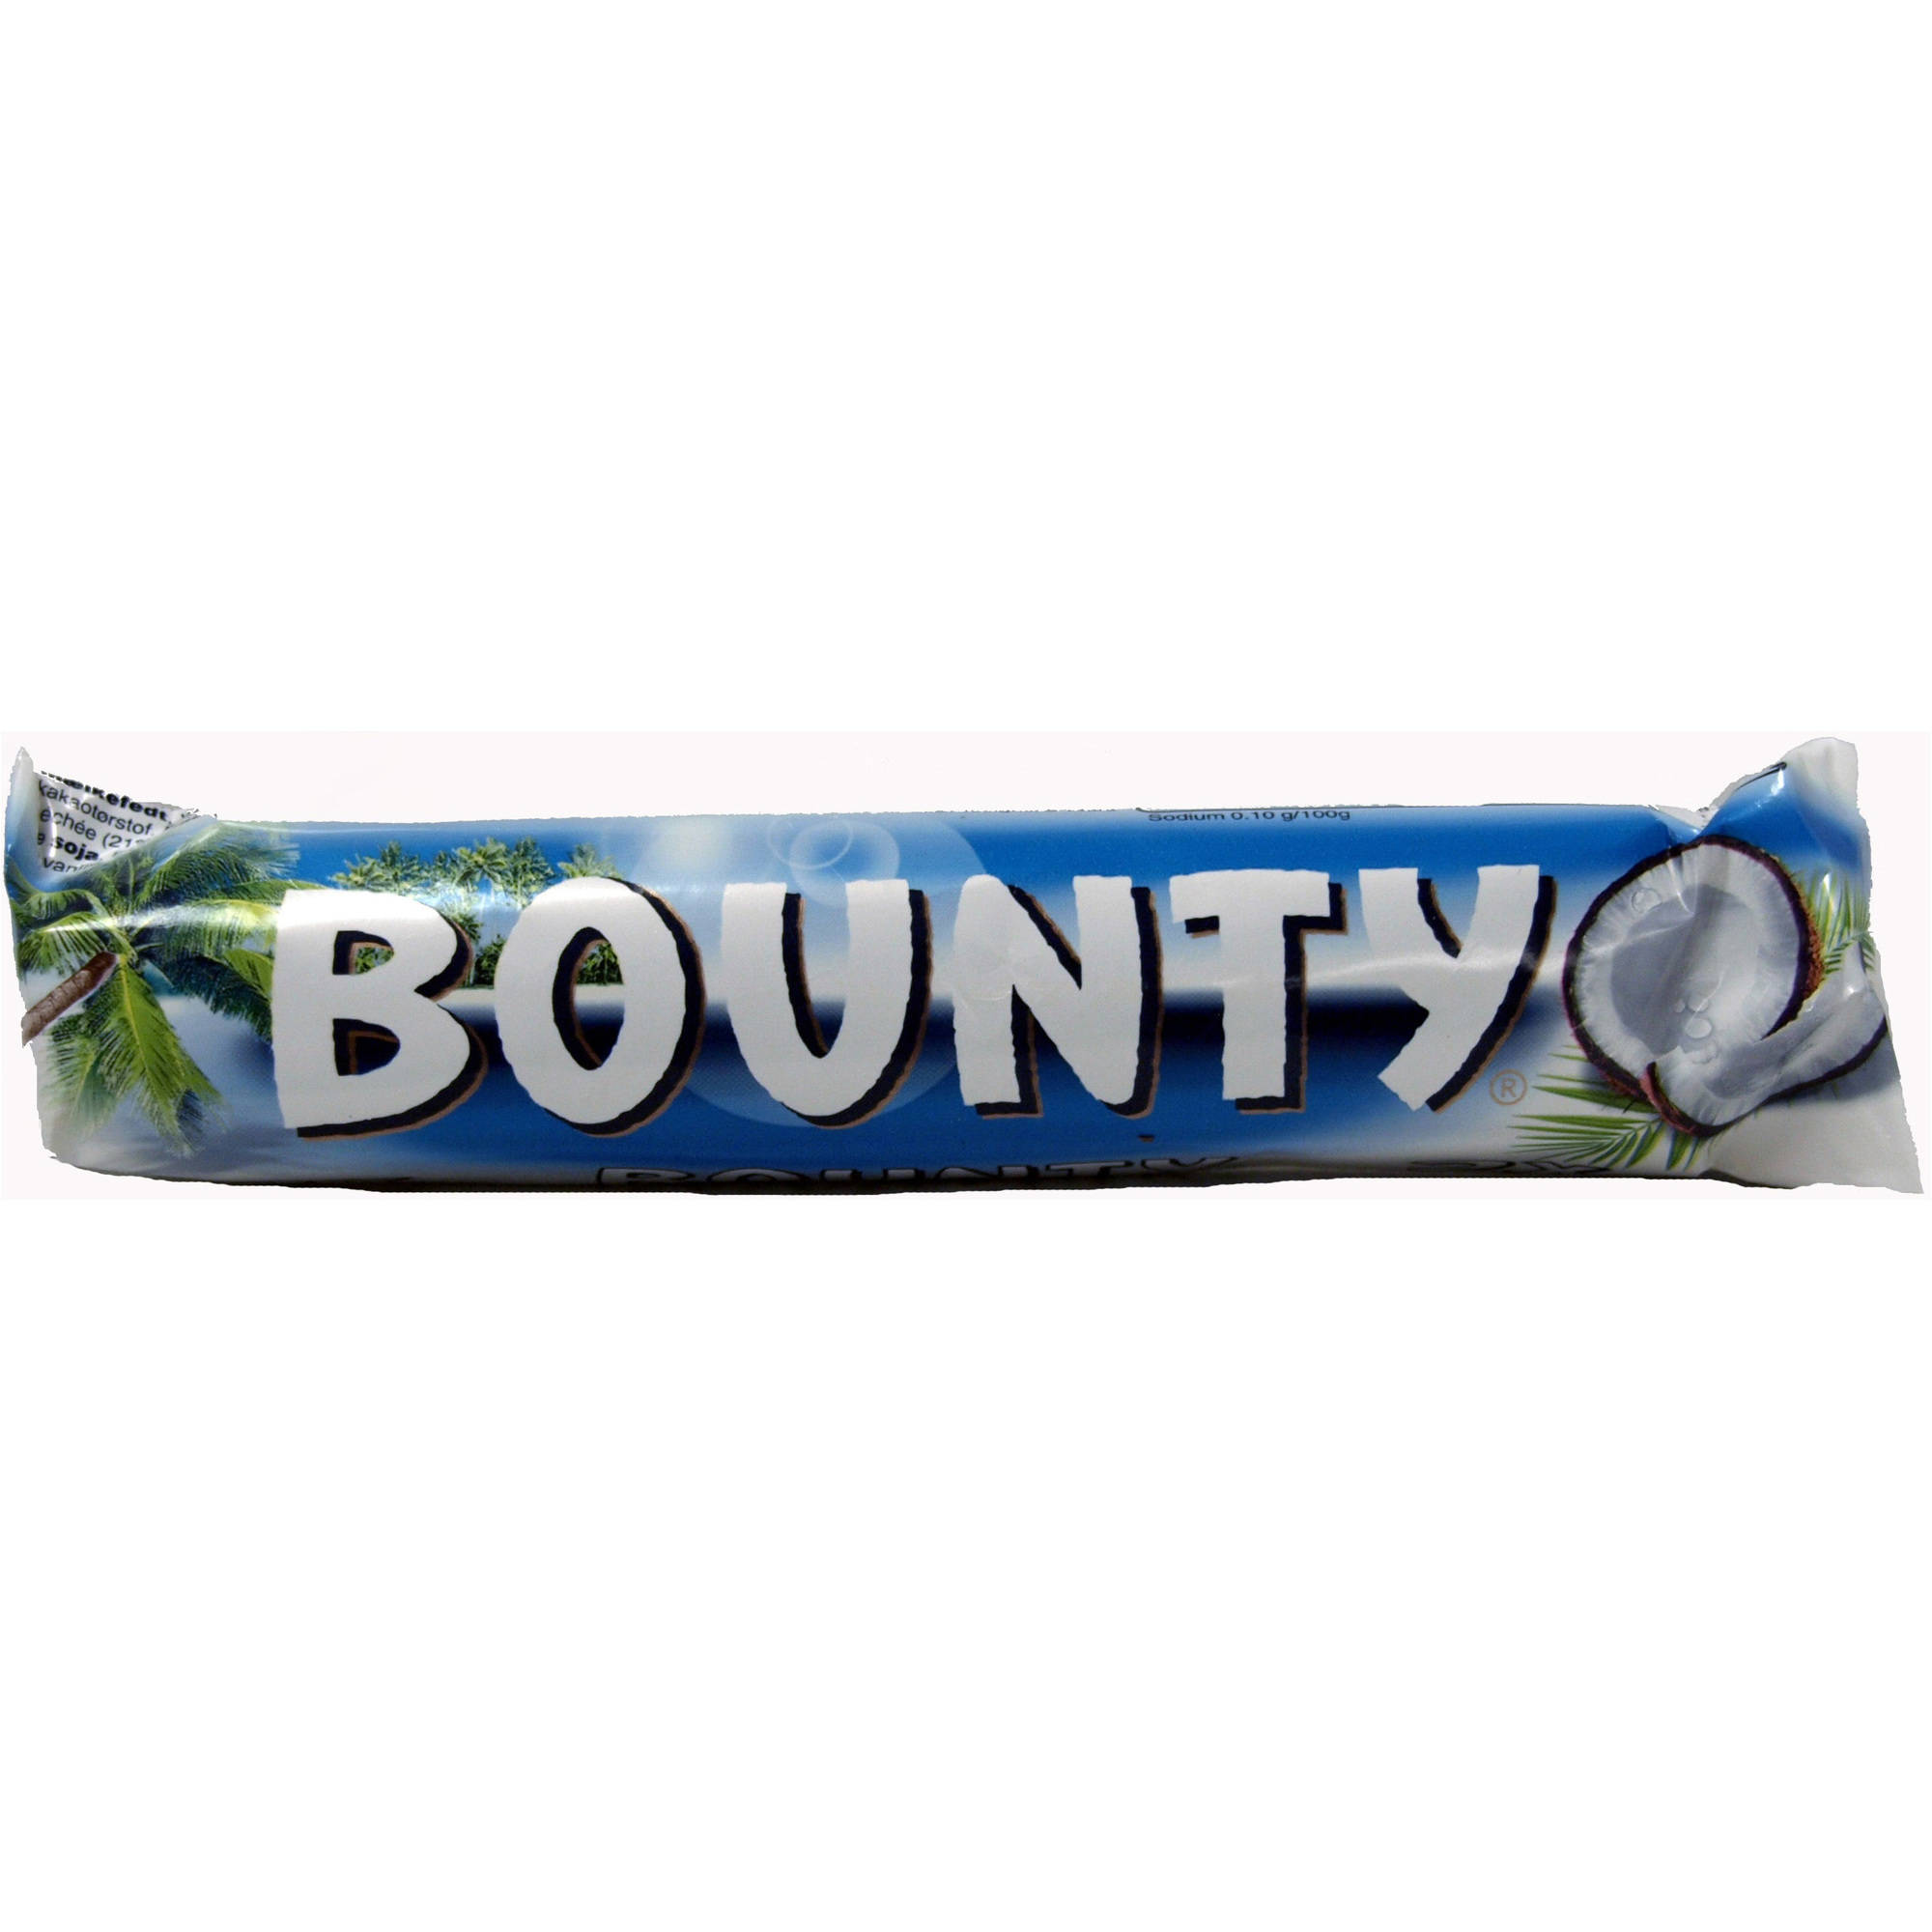 Bounty Milk Chocolate Candy Bars, 2 oz, (Pack of 24) by Generic